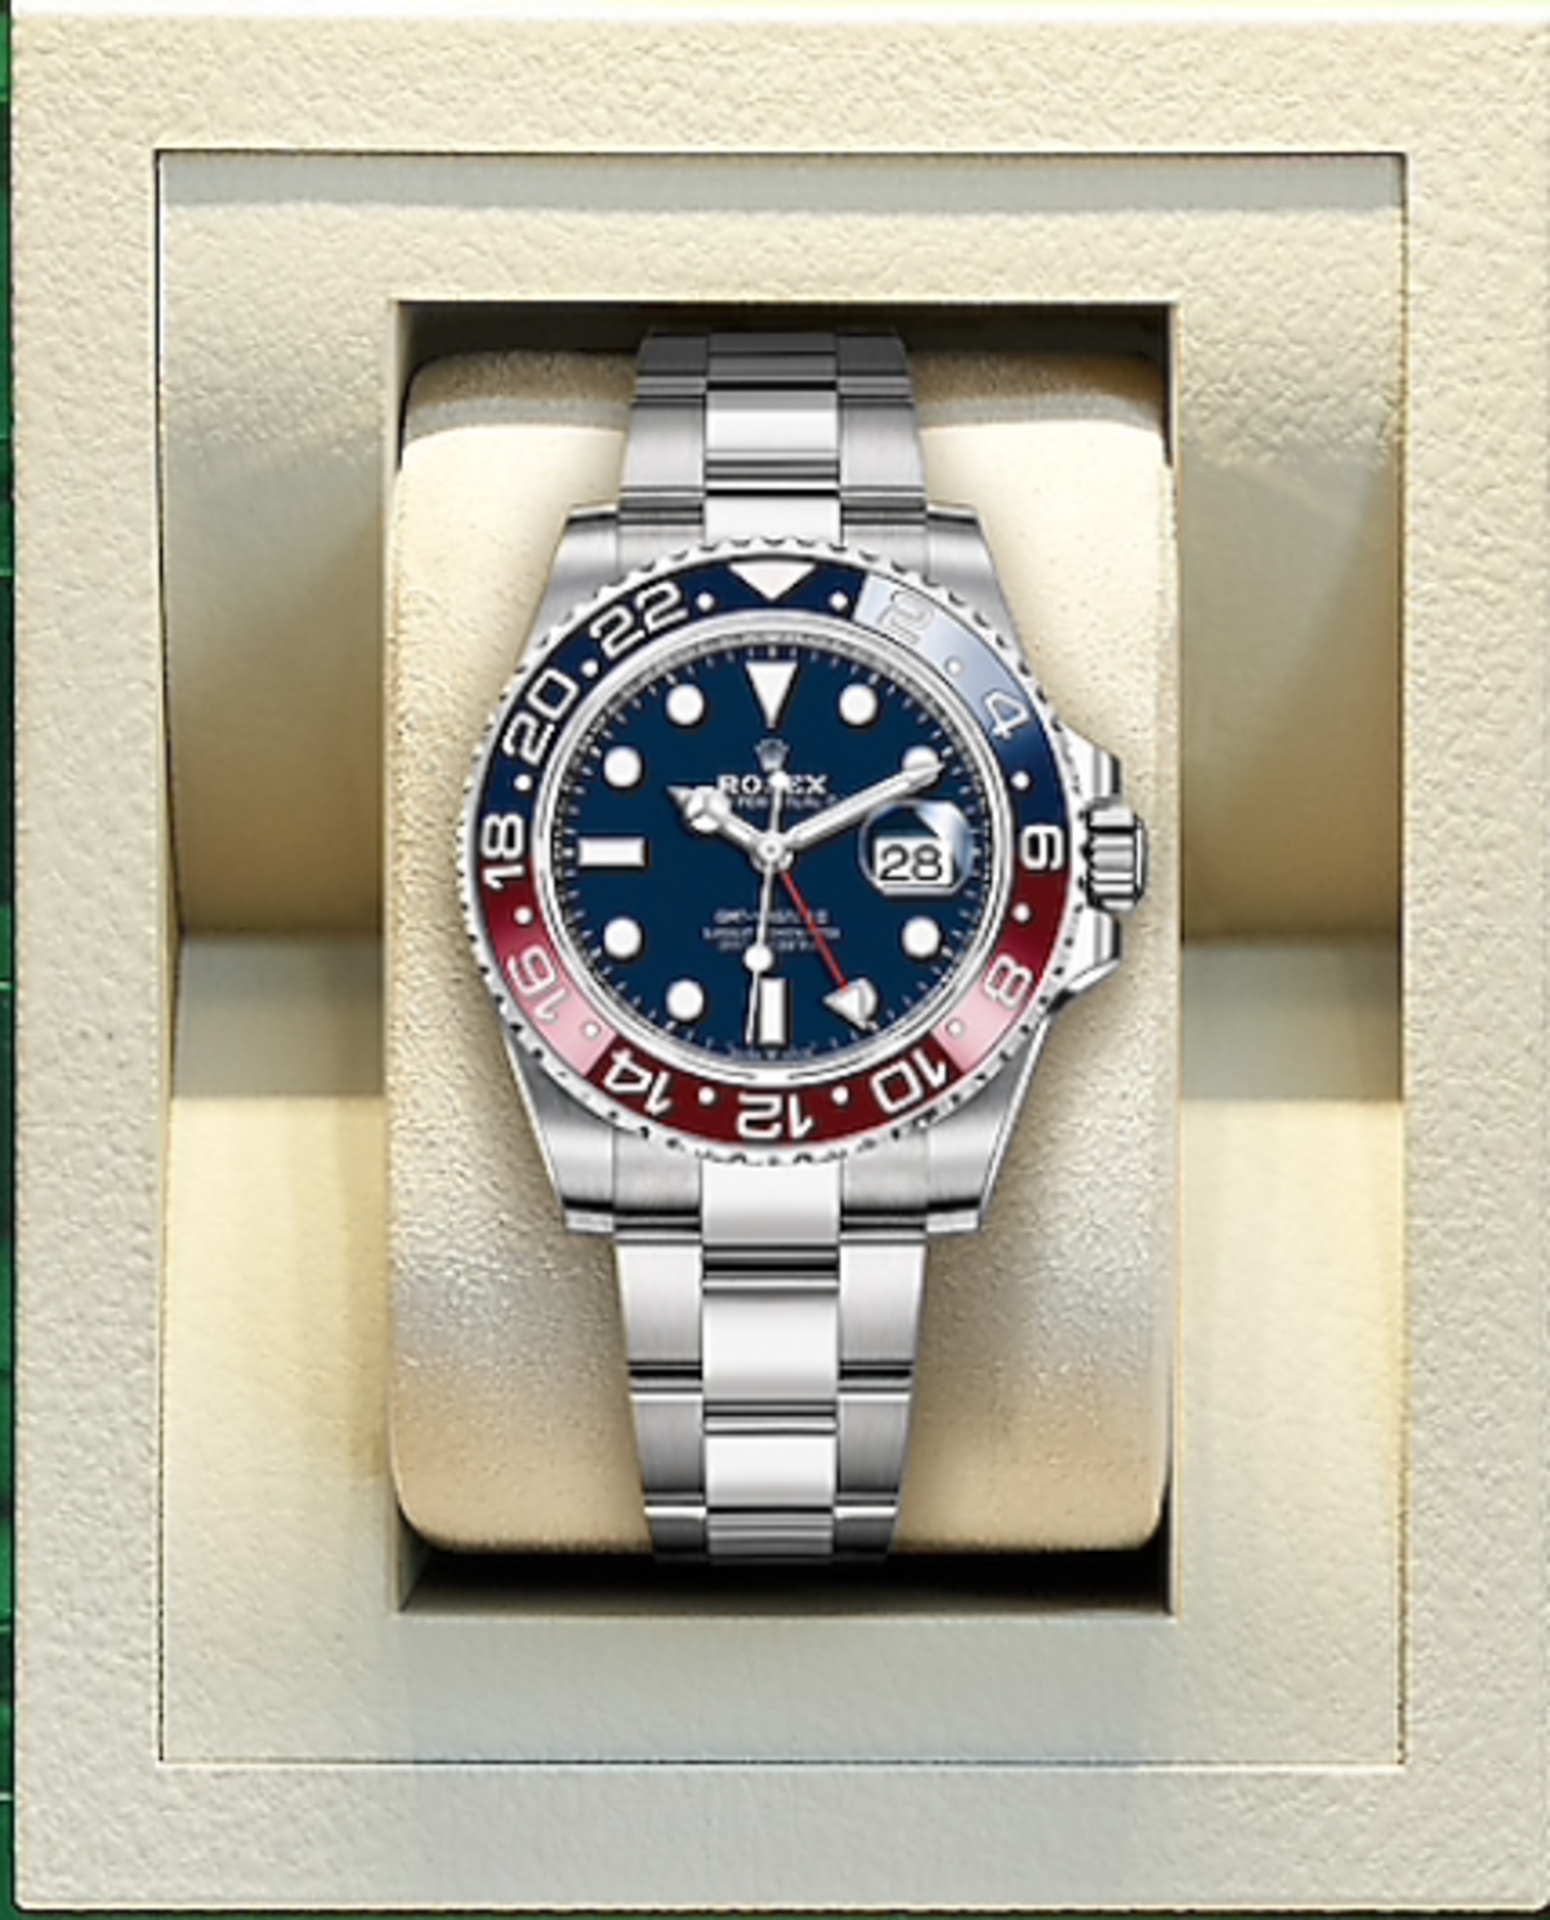 ROLEX GMT MASTER II 40MM *18ct WHITE GOLD* (2021 - UNWORN) *BEAT THE 5 YEAR WAIT* (GREAT INVESTMENT) - Image 2 of 2